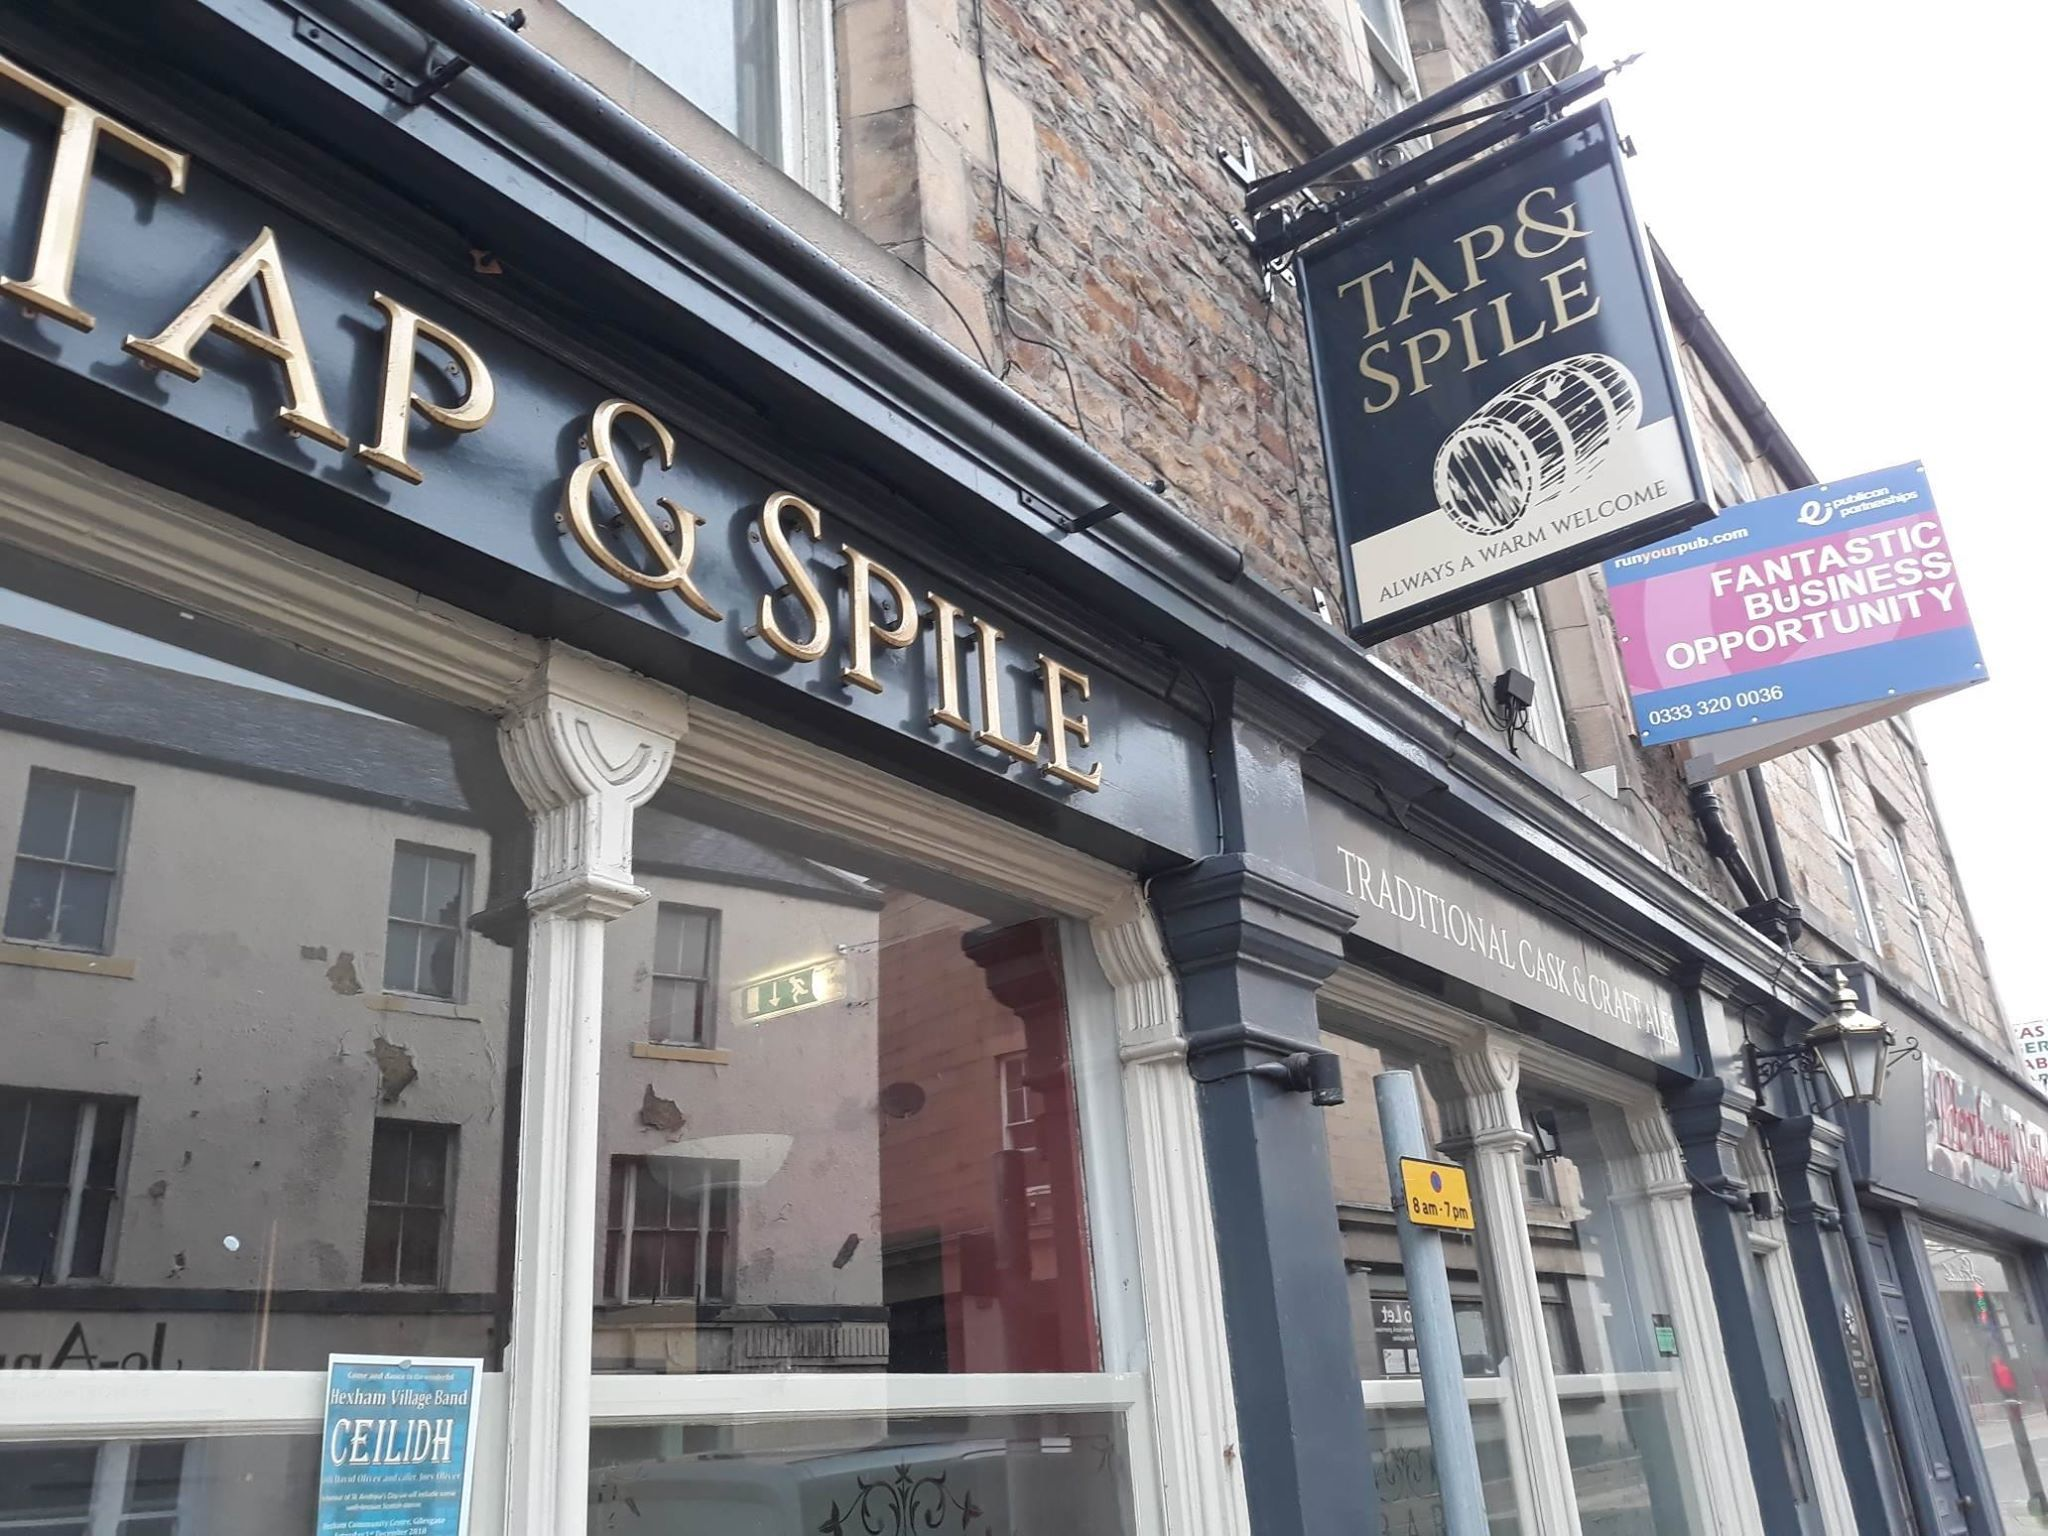 The Tap and Spile pub in Hexham.